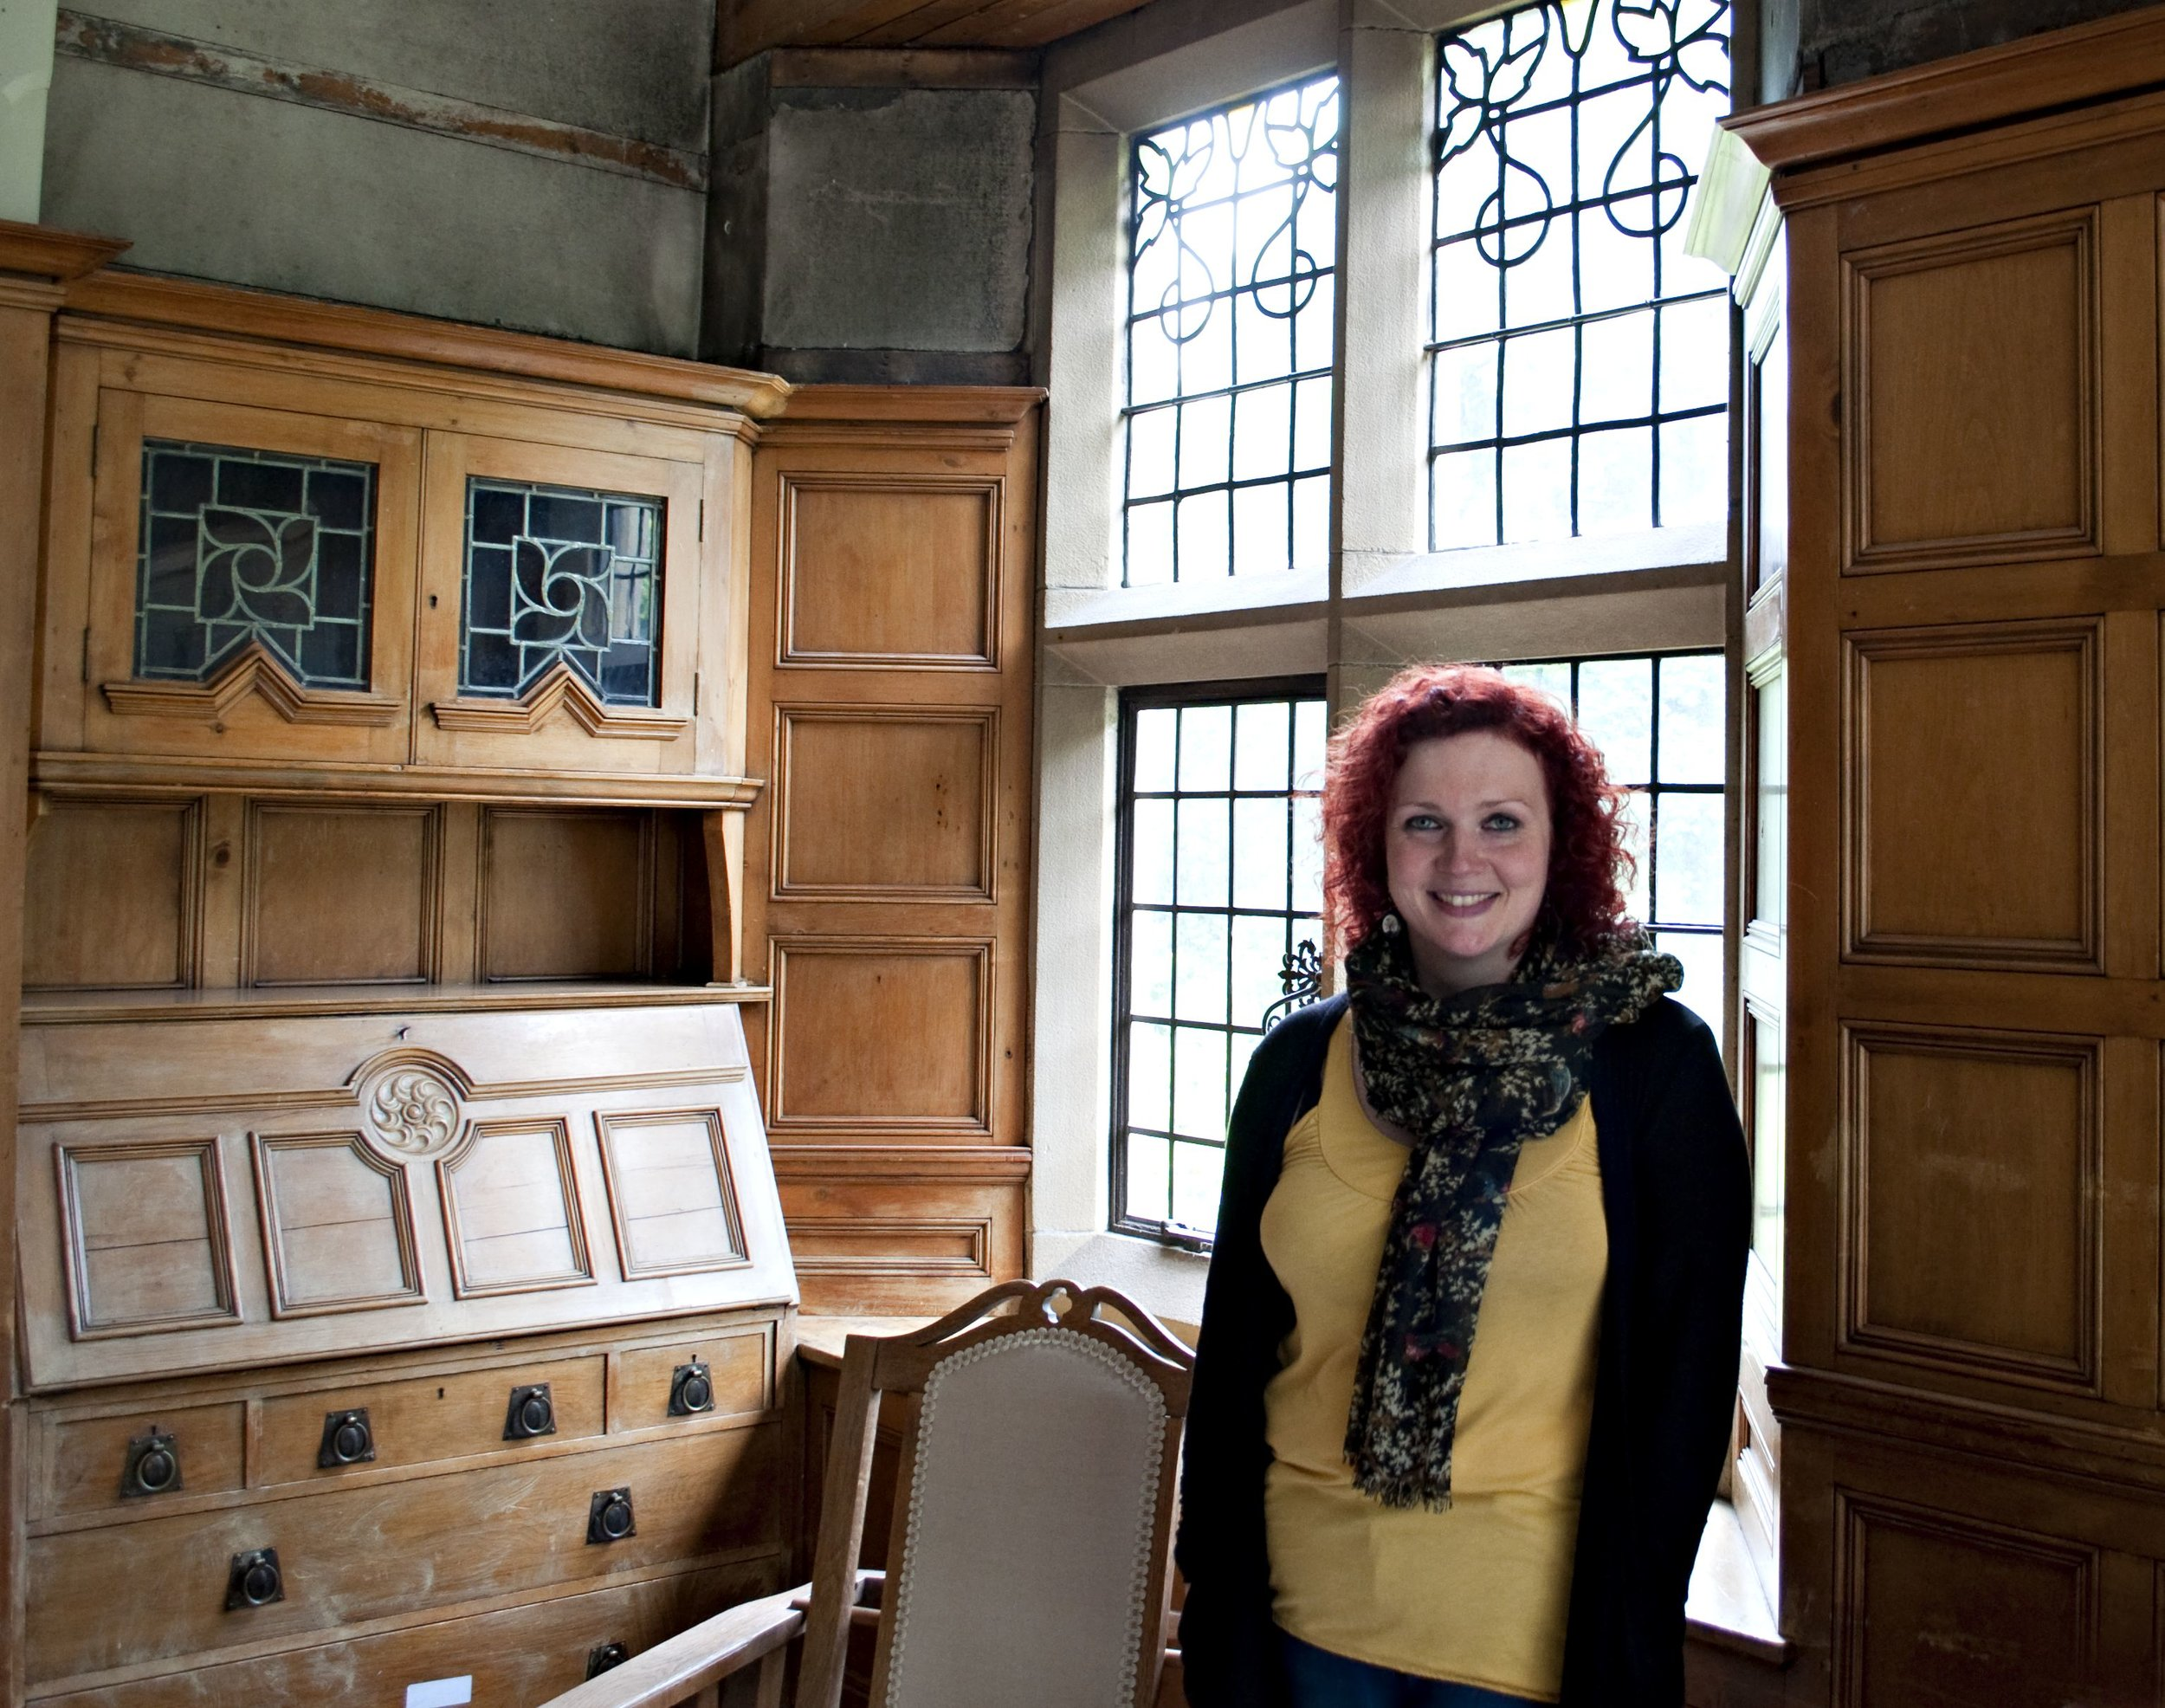 Delighted to welcome Veronica Smith - an expert in George Wragge of Salford.  She confirmed that the metalwork in the windows (including the stained glass) would have been made at Wragge's studio.